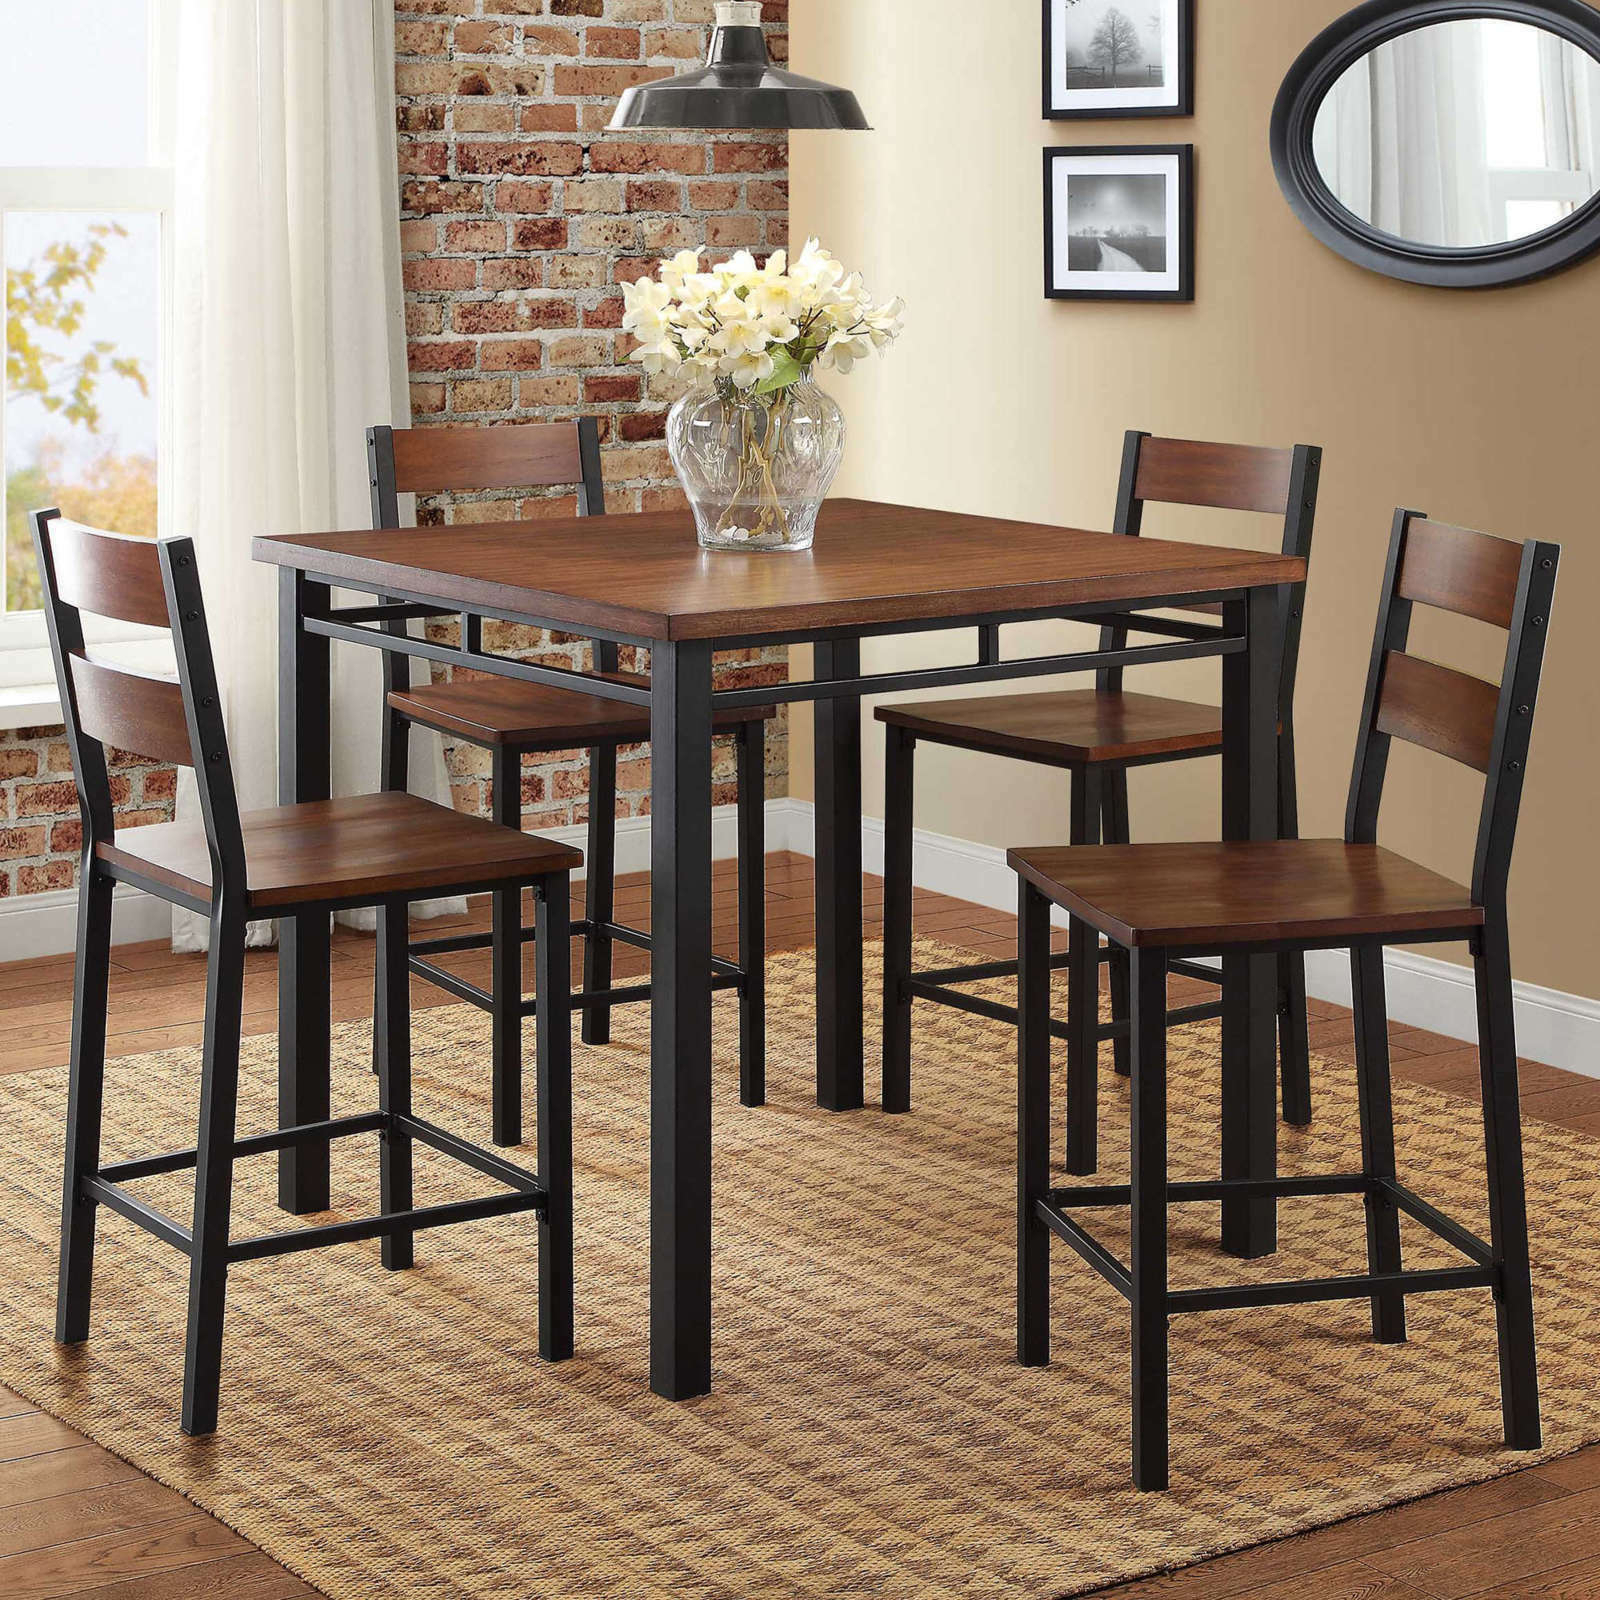 Details About 5 Piece Counter Height Dining Set 4 Chairs Table Kitchen  Breakfast Nook Brown Intended For Preferred 5 Piece Breakfast Nook Dining Sets (View 7 of 20)